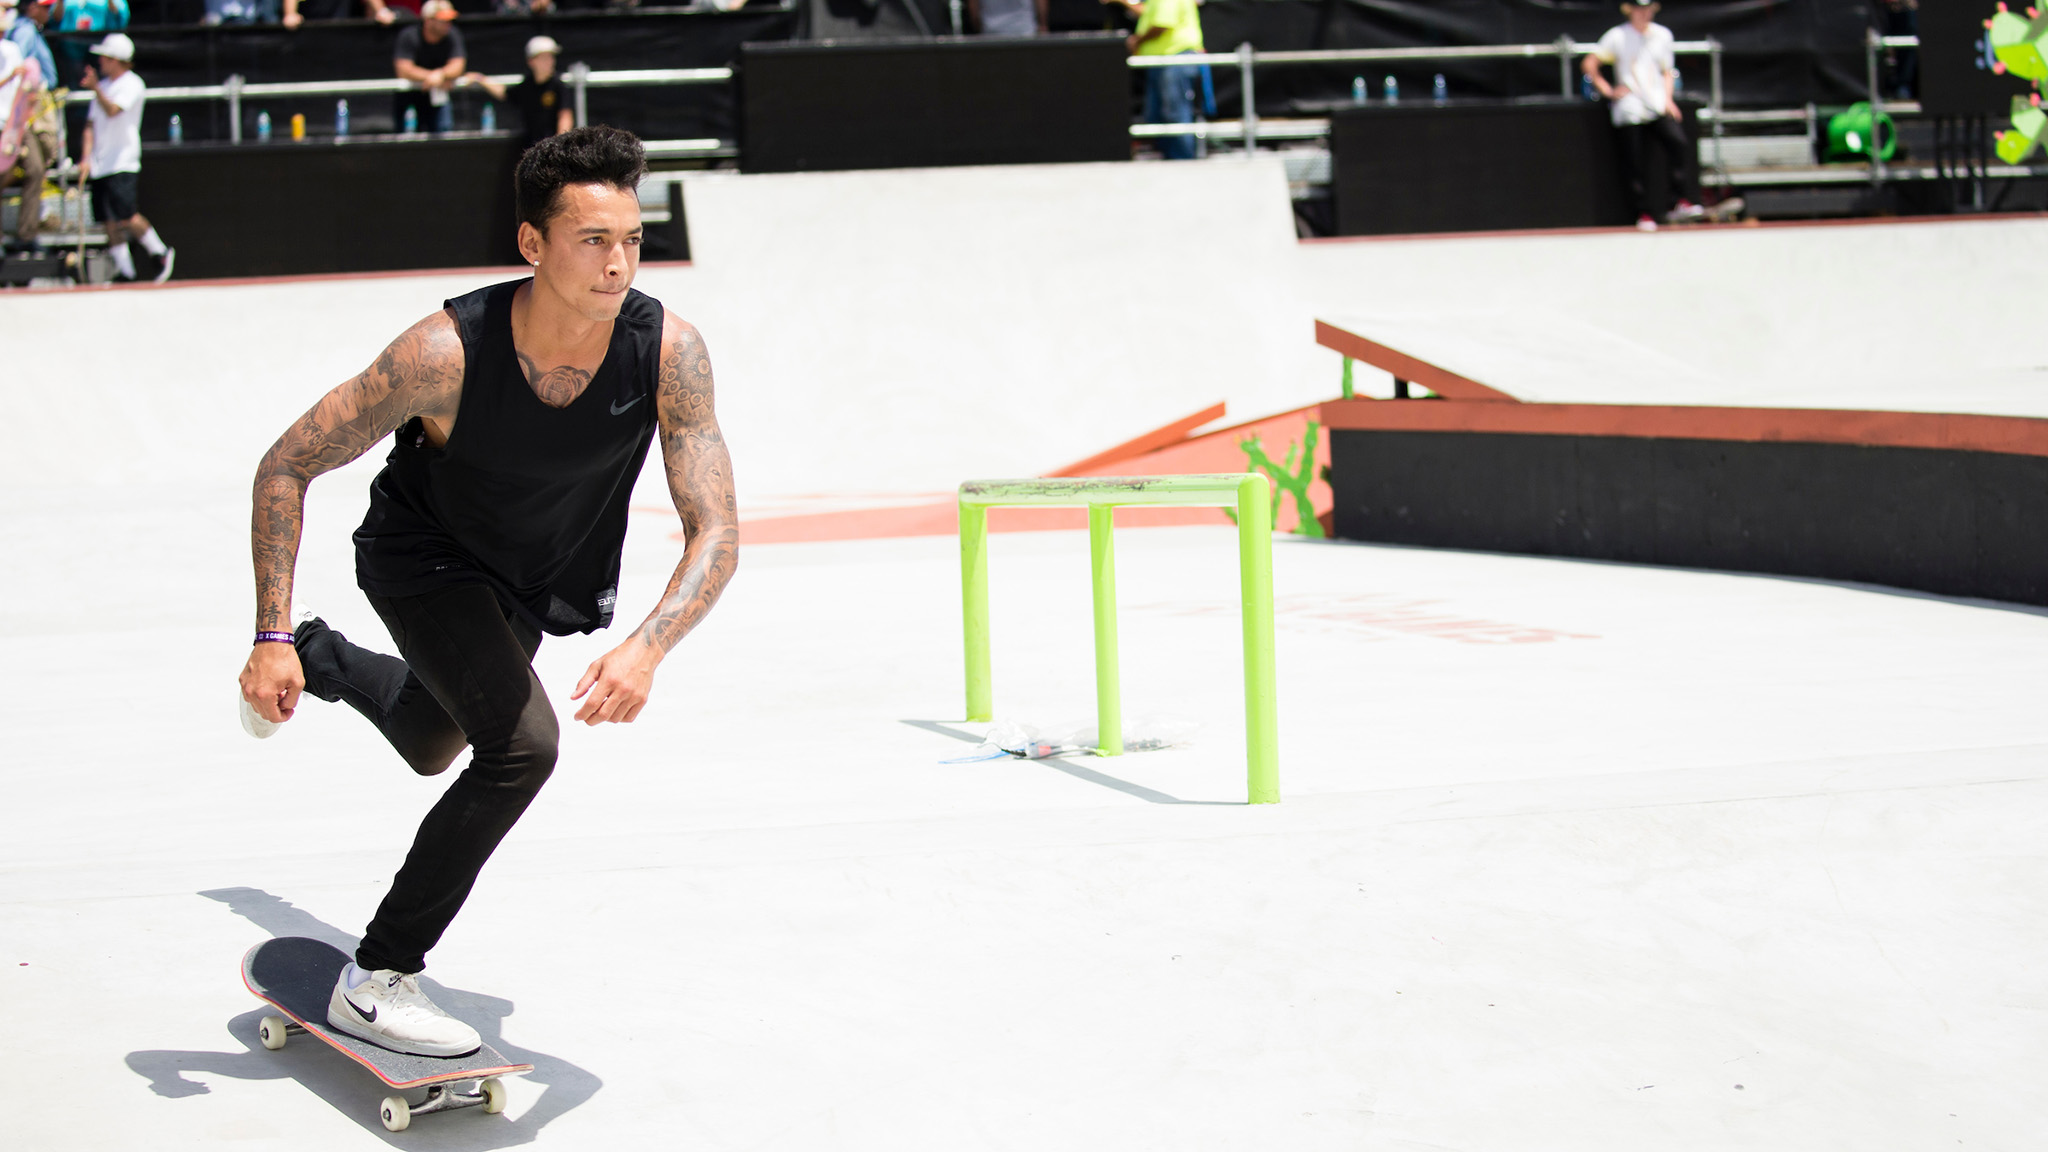 Nyjah Huston joins Nike SB